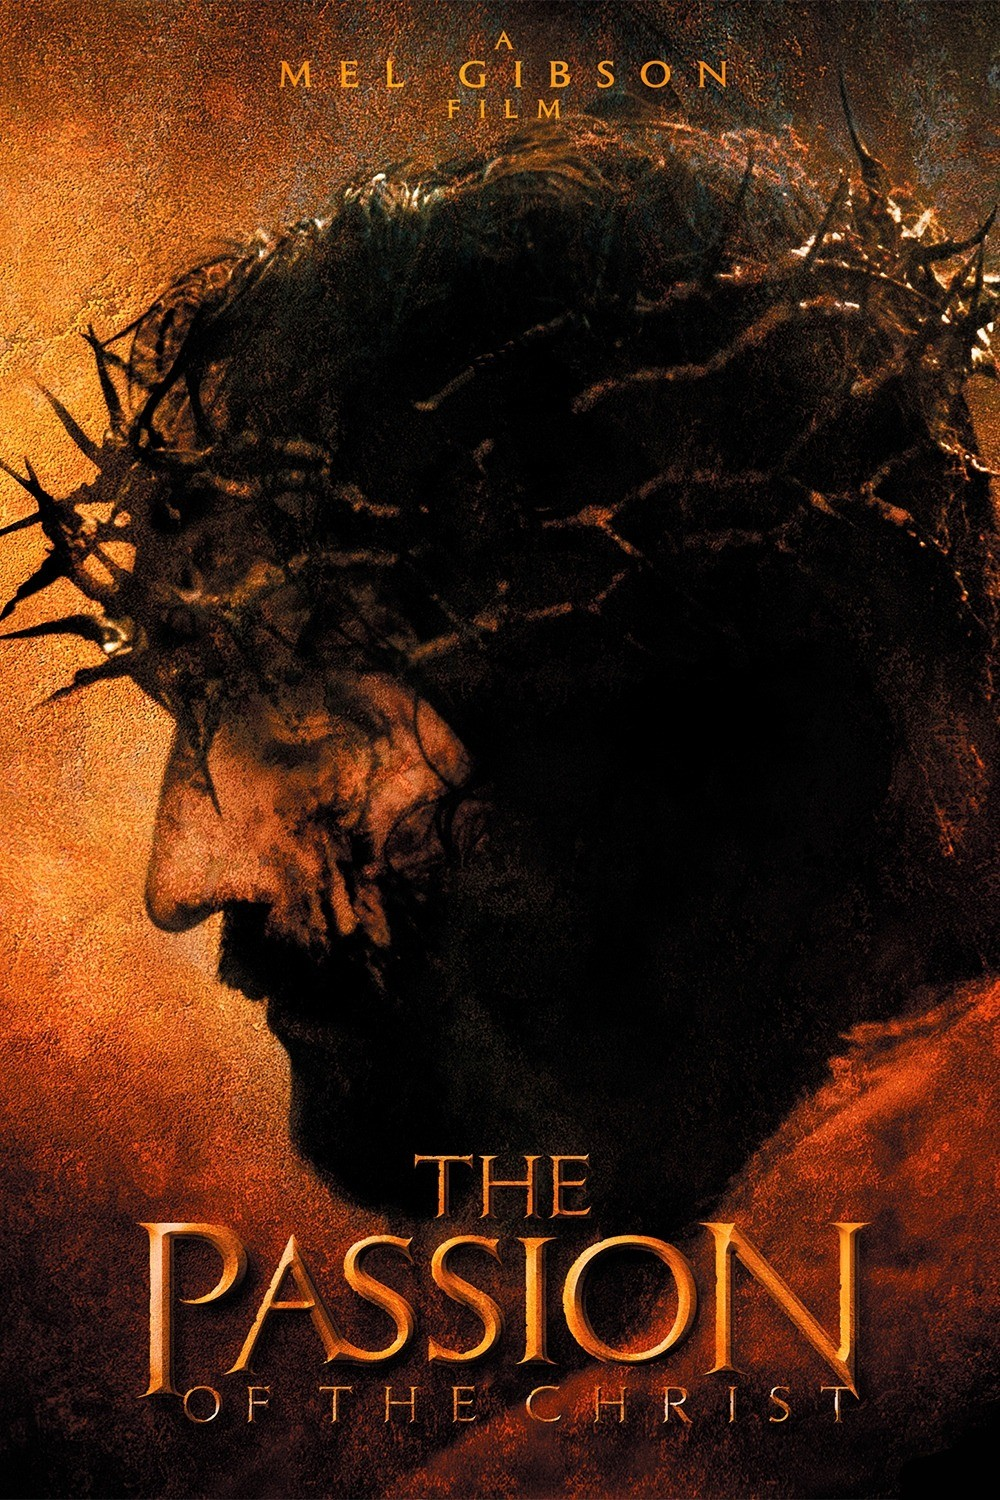 The Passion of the Christ - Τα Πάθη του Χριστού (2004)